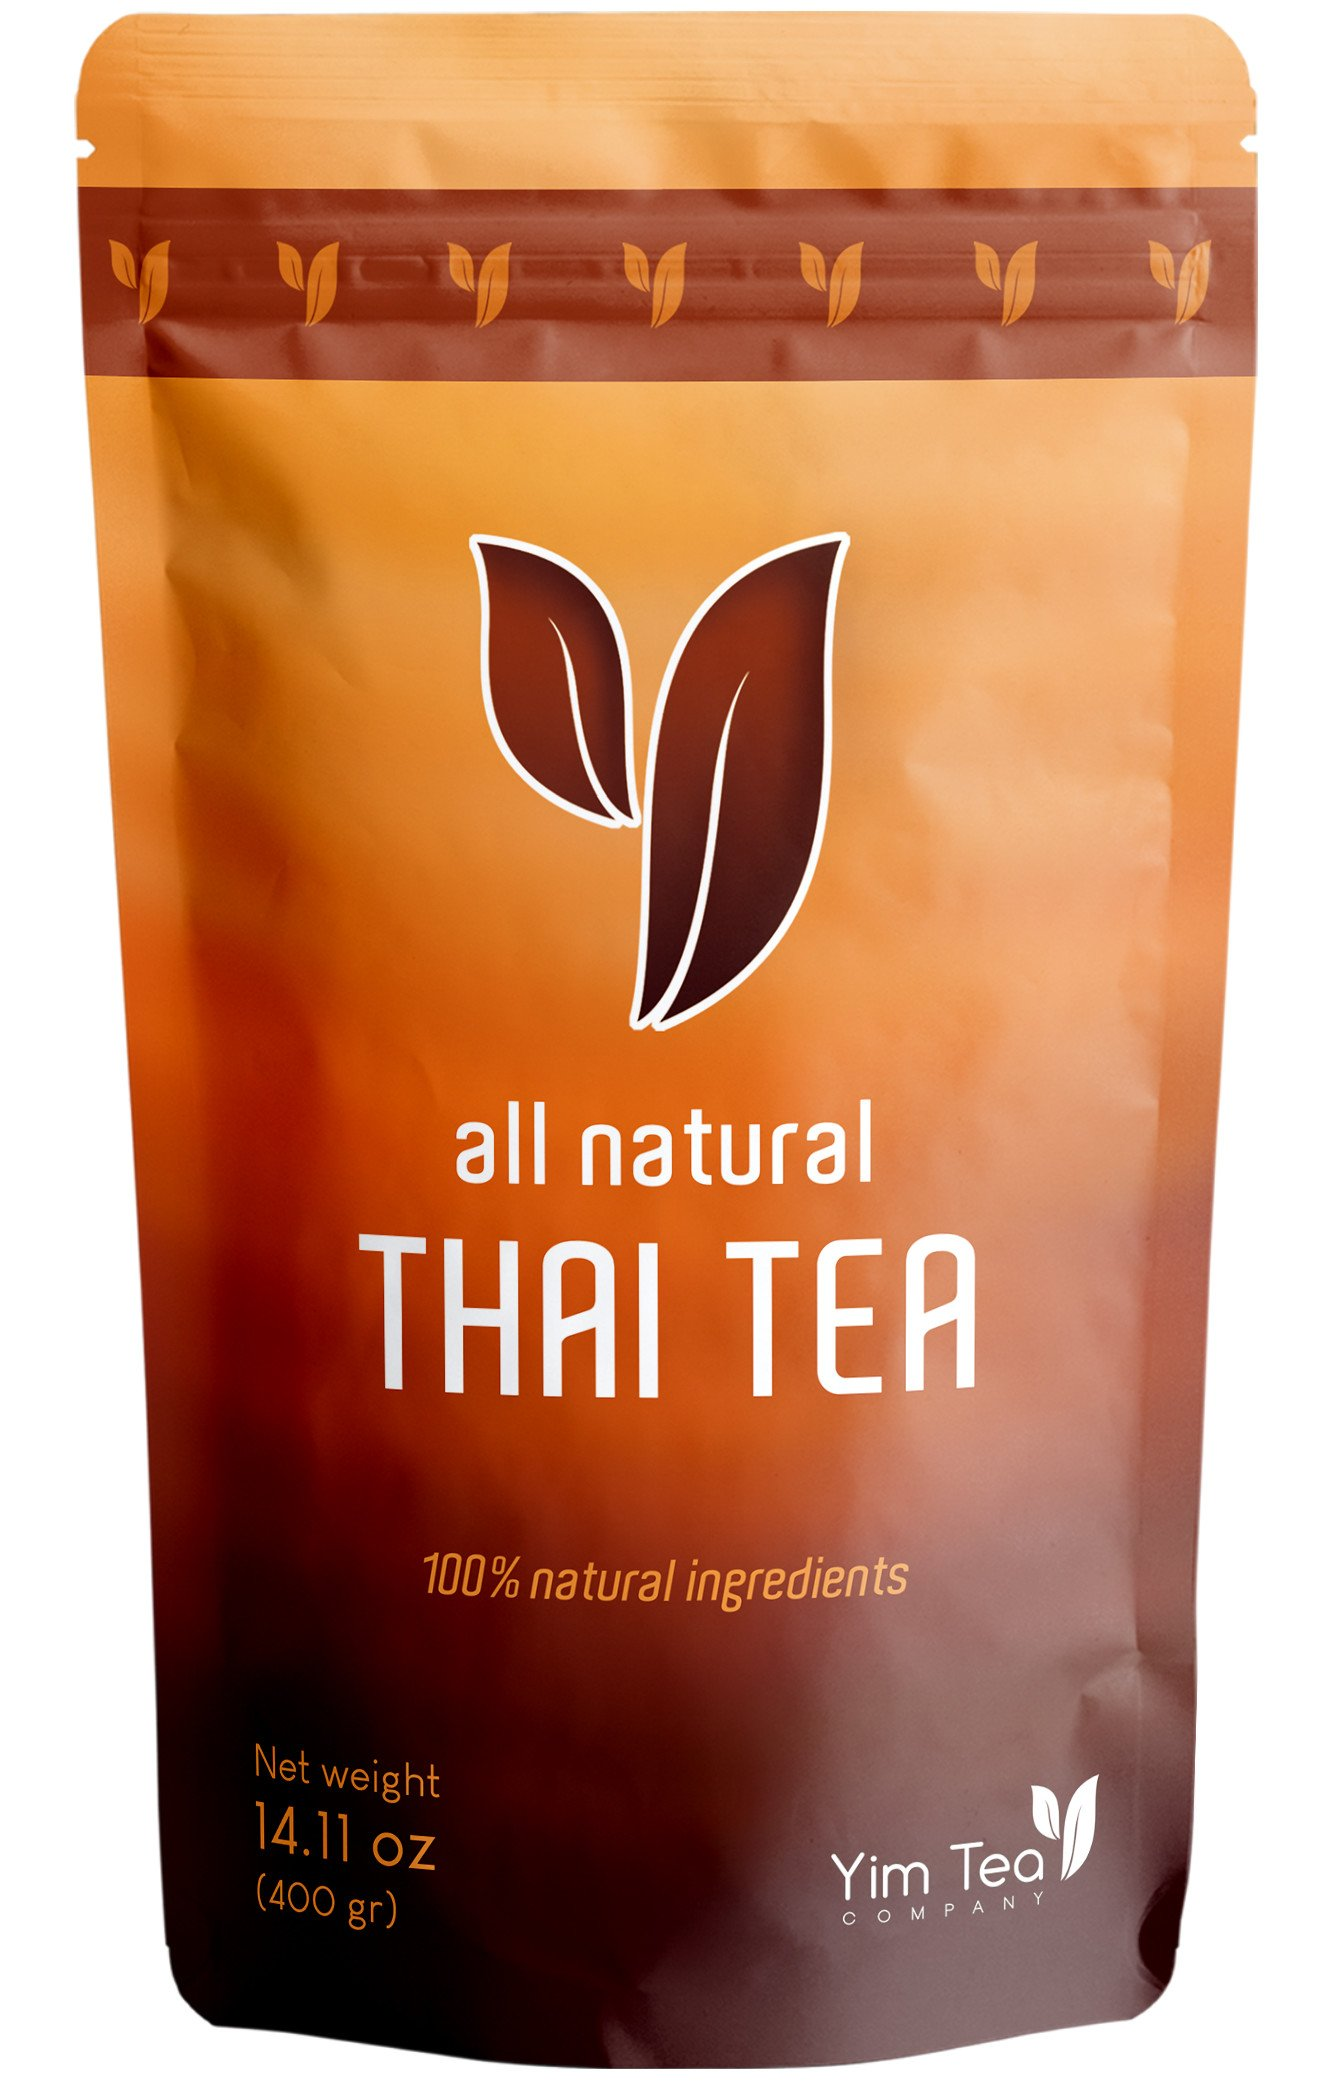 Thai Tea - 100% Natural Loose Leaf Tea Mix - 400g | Made with Assam Black Tea | Makes Iced Tea and Boba Tea | By Yim Tea Co. by Yim Tea Co.